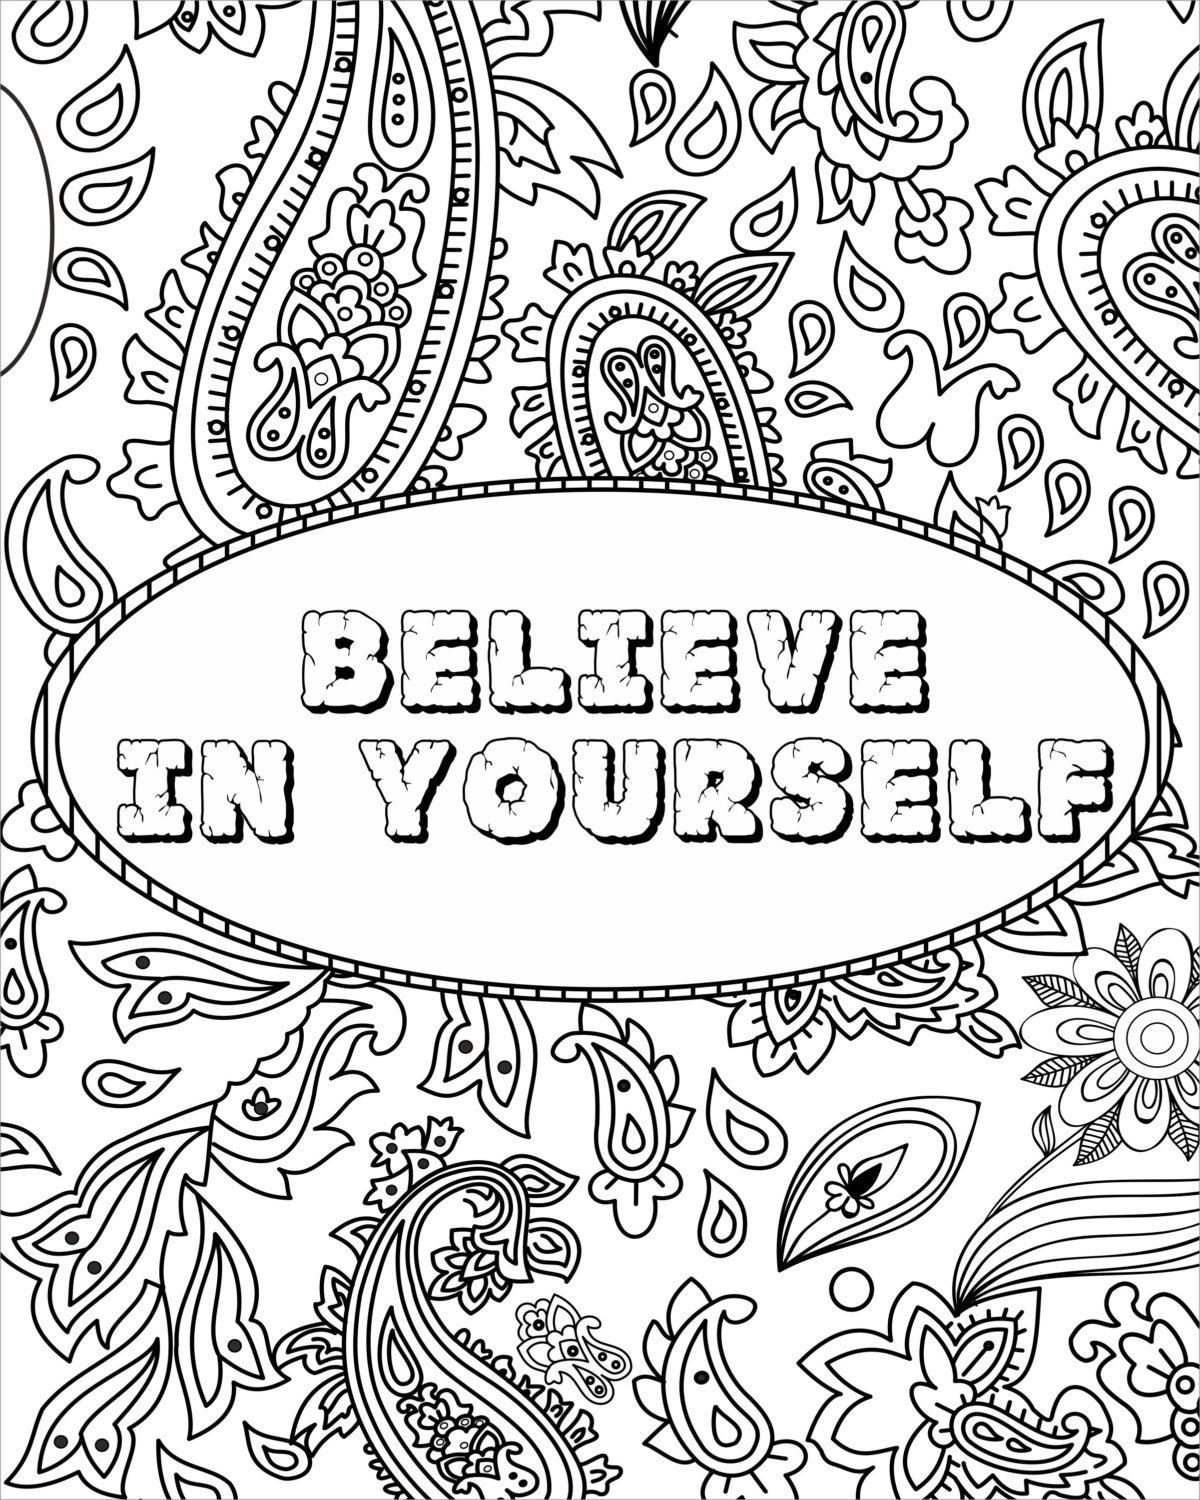 Inspirational Quotes Coloring Pages - Coloring Home